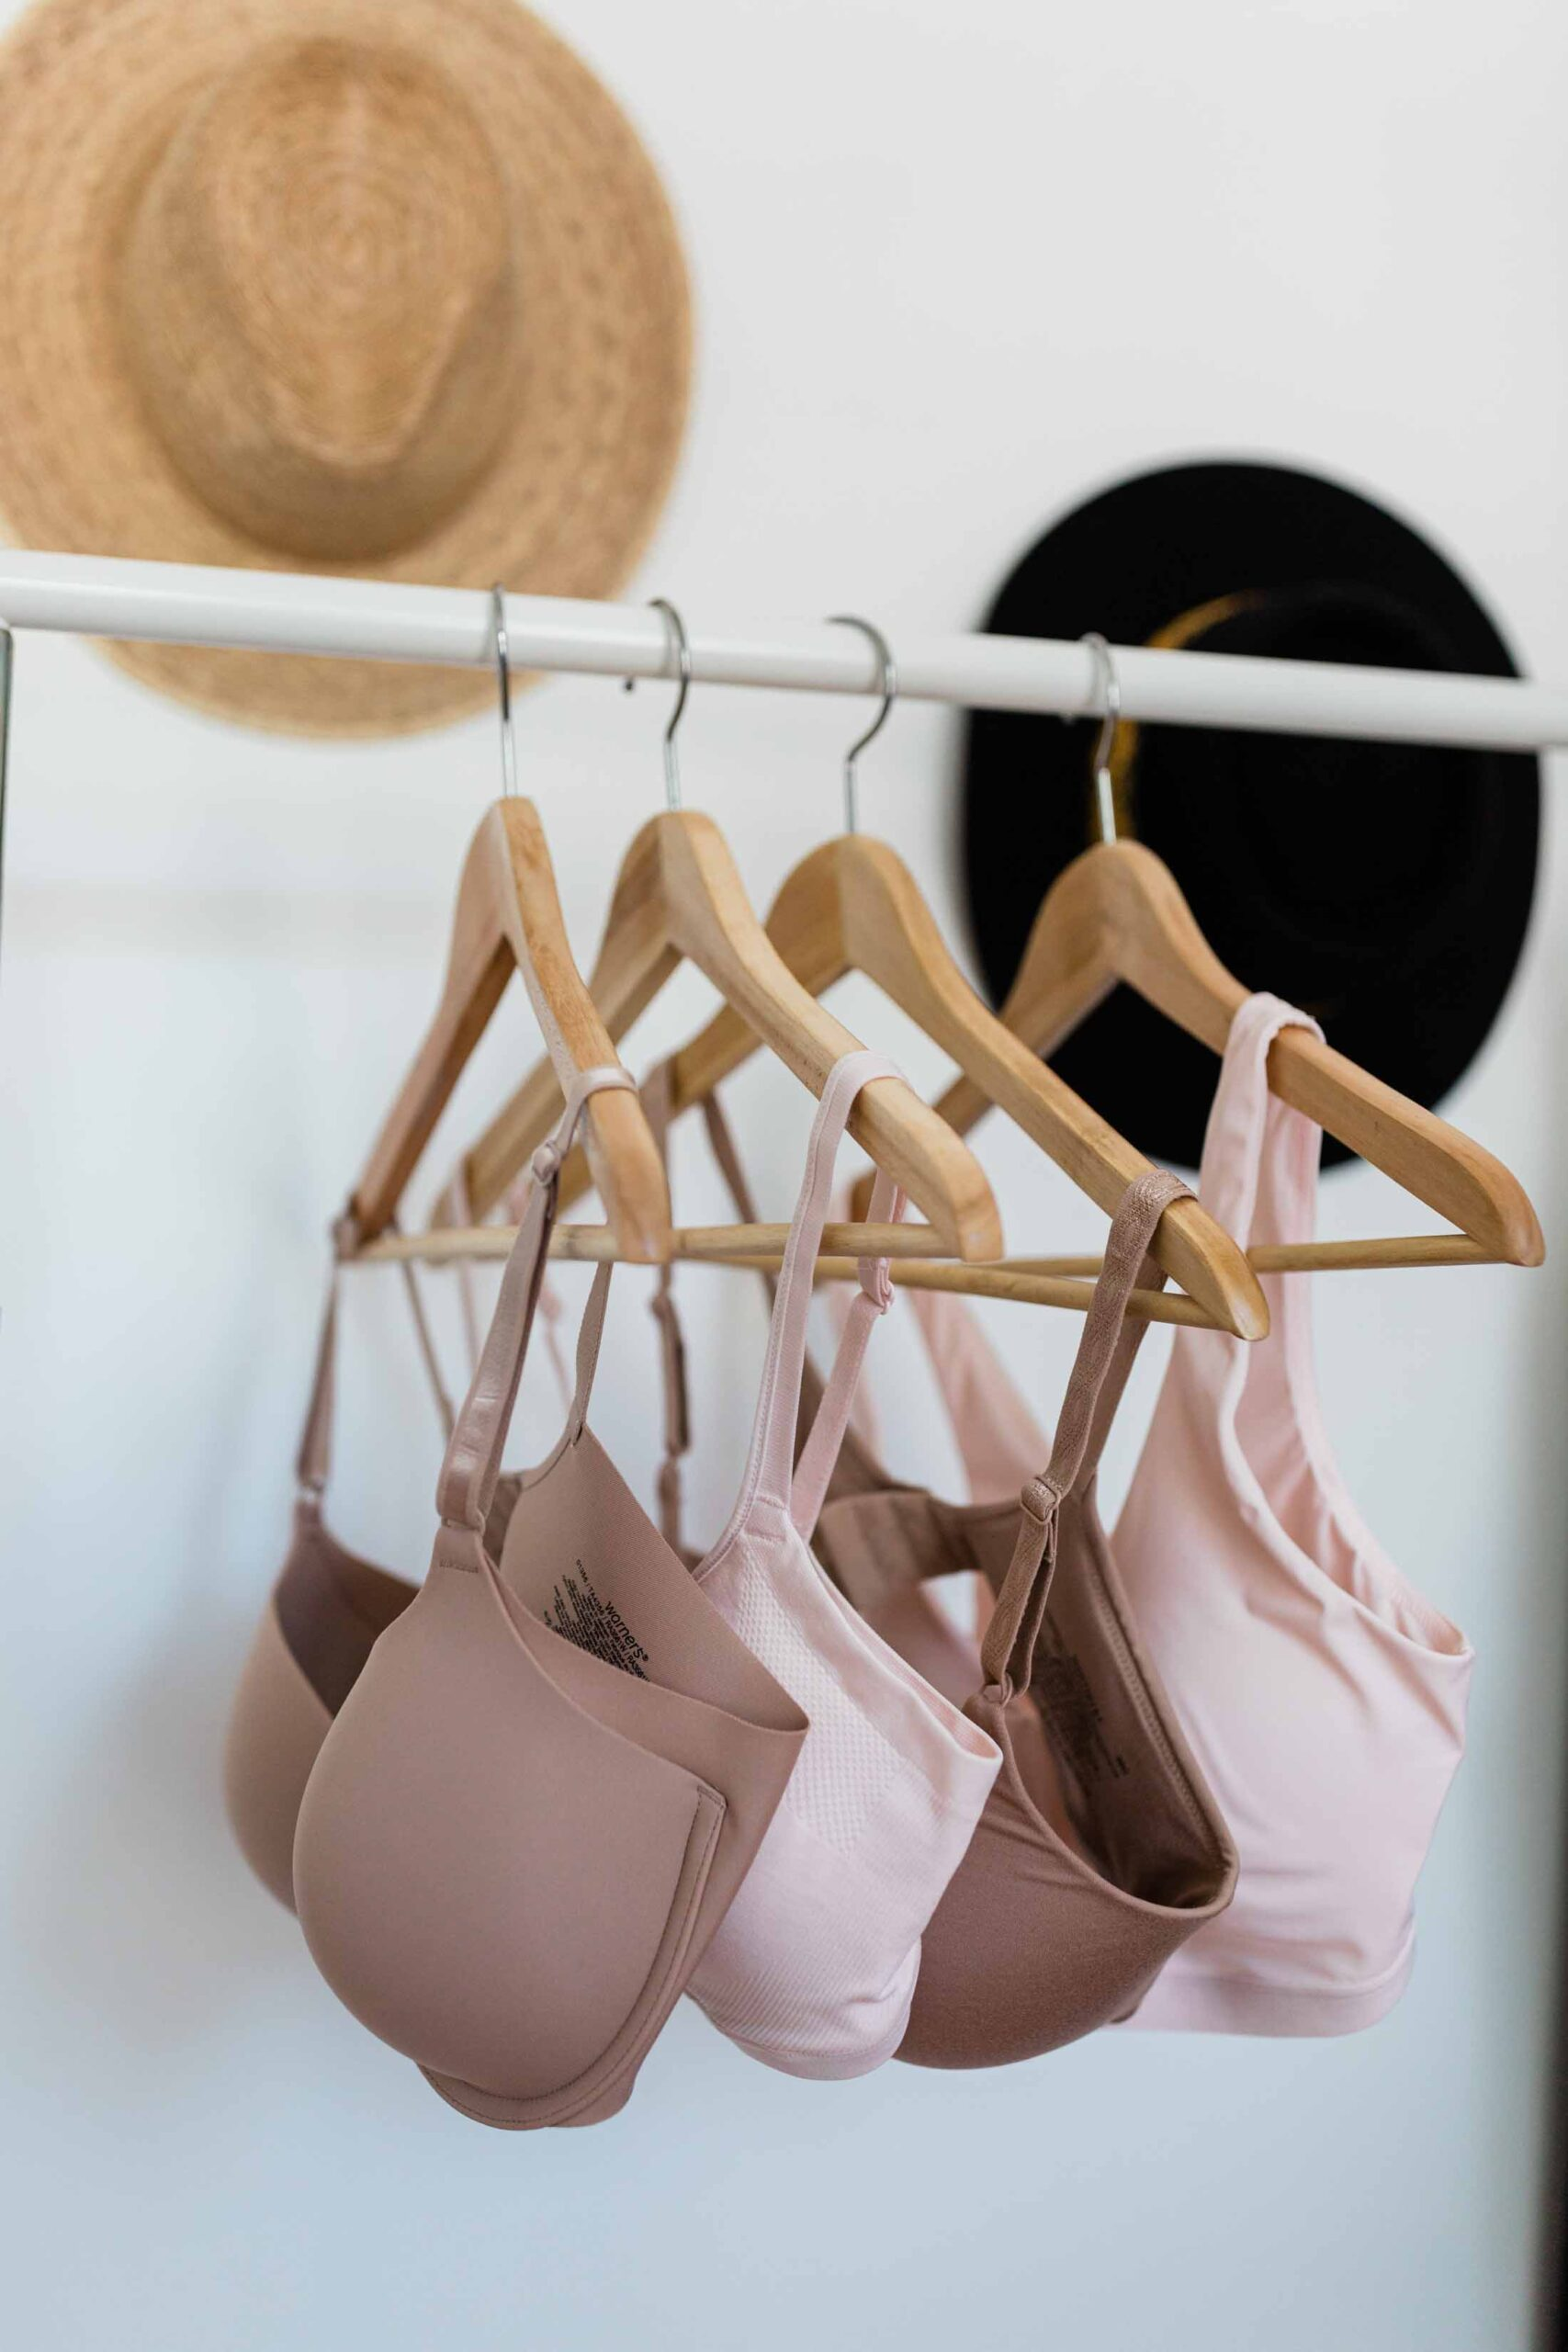 The best compliment I can give a bra is that it's so good, I never think about it, not even when I'm kicking my feet up at the end of the day. Warners makes that bra.